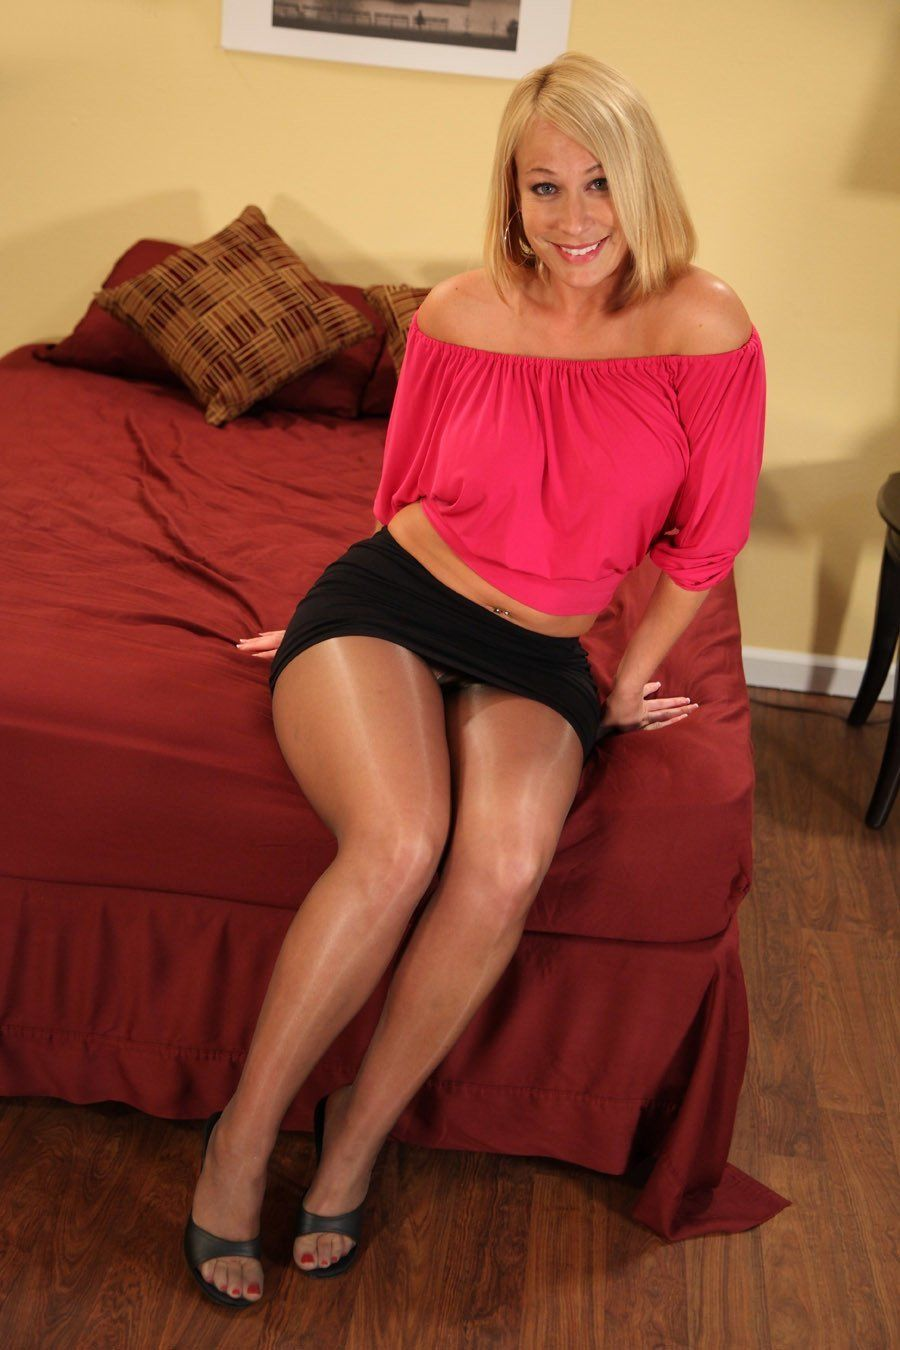 pantyhose milf upskirt | hot mature ladies, milfs and gilfs